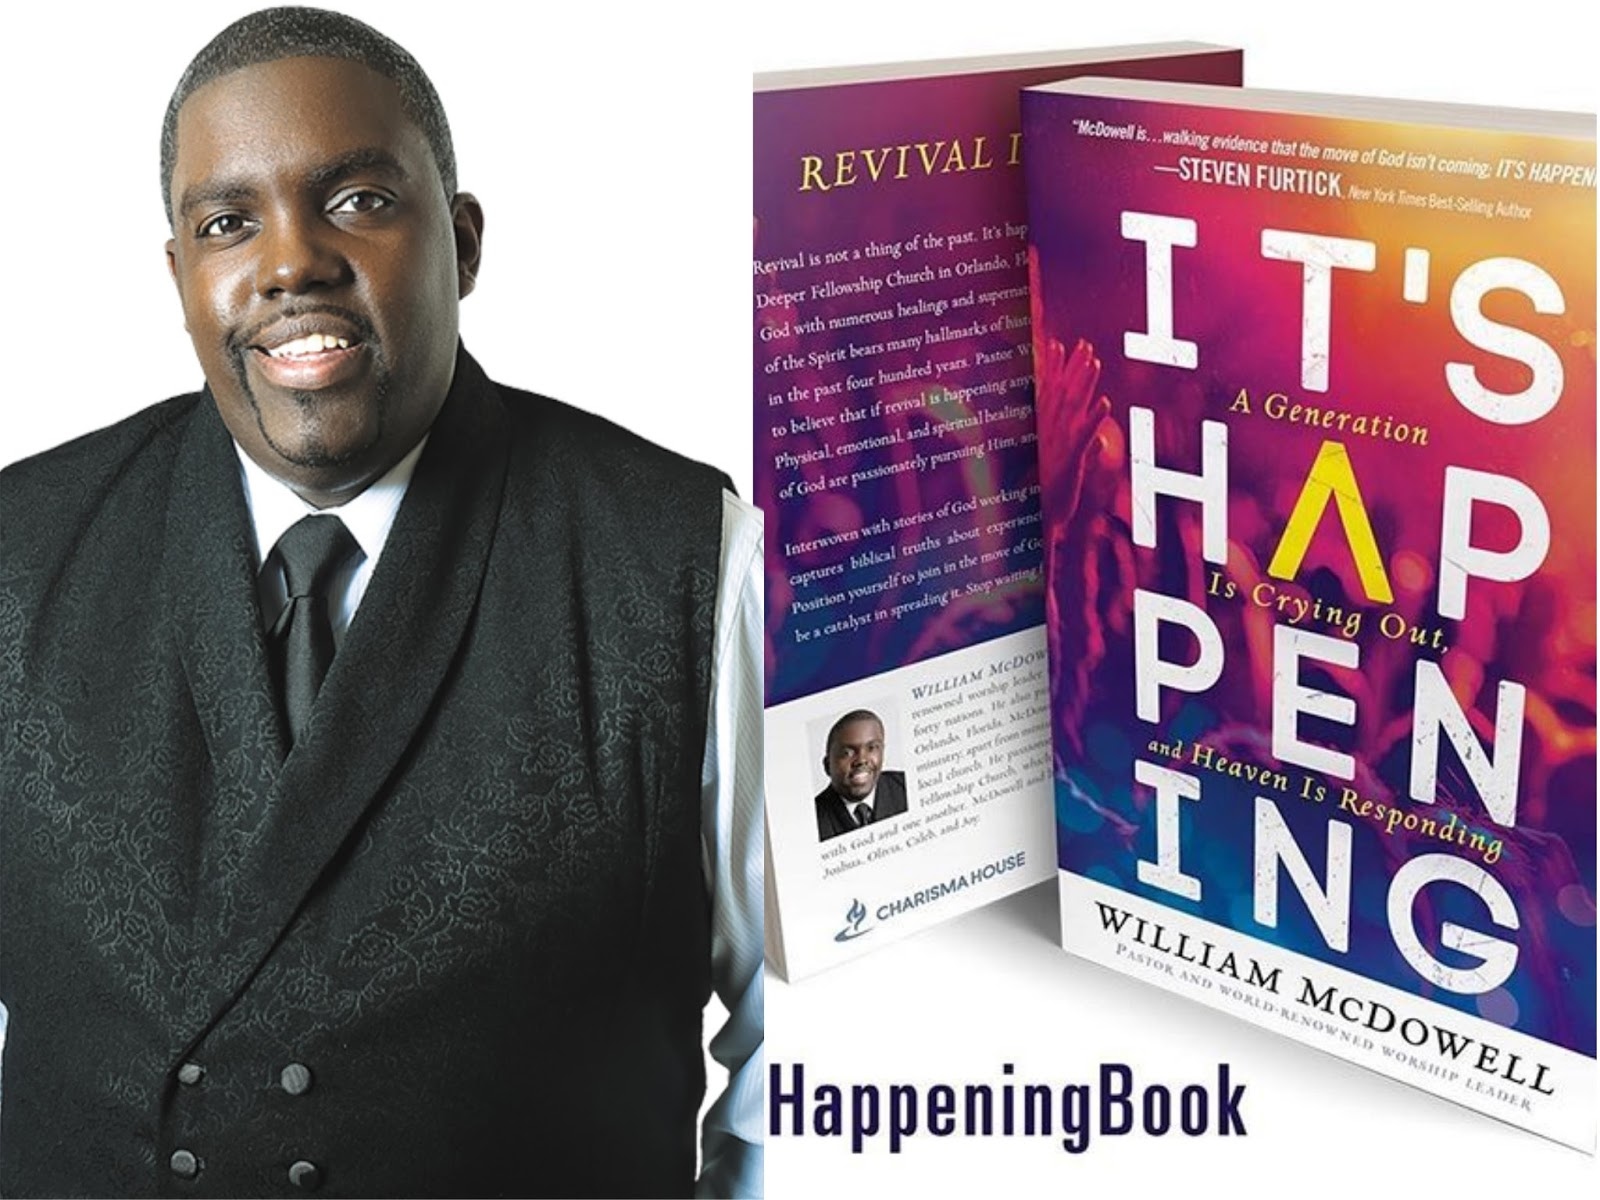 William McDowell Book. Its Happening. Gospel Redefined